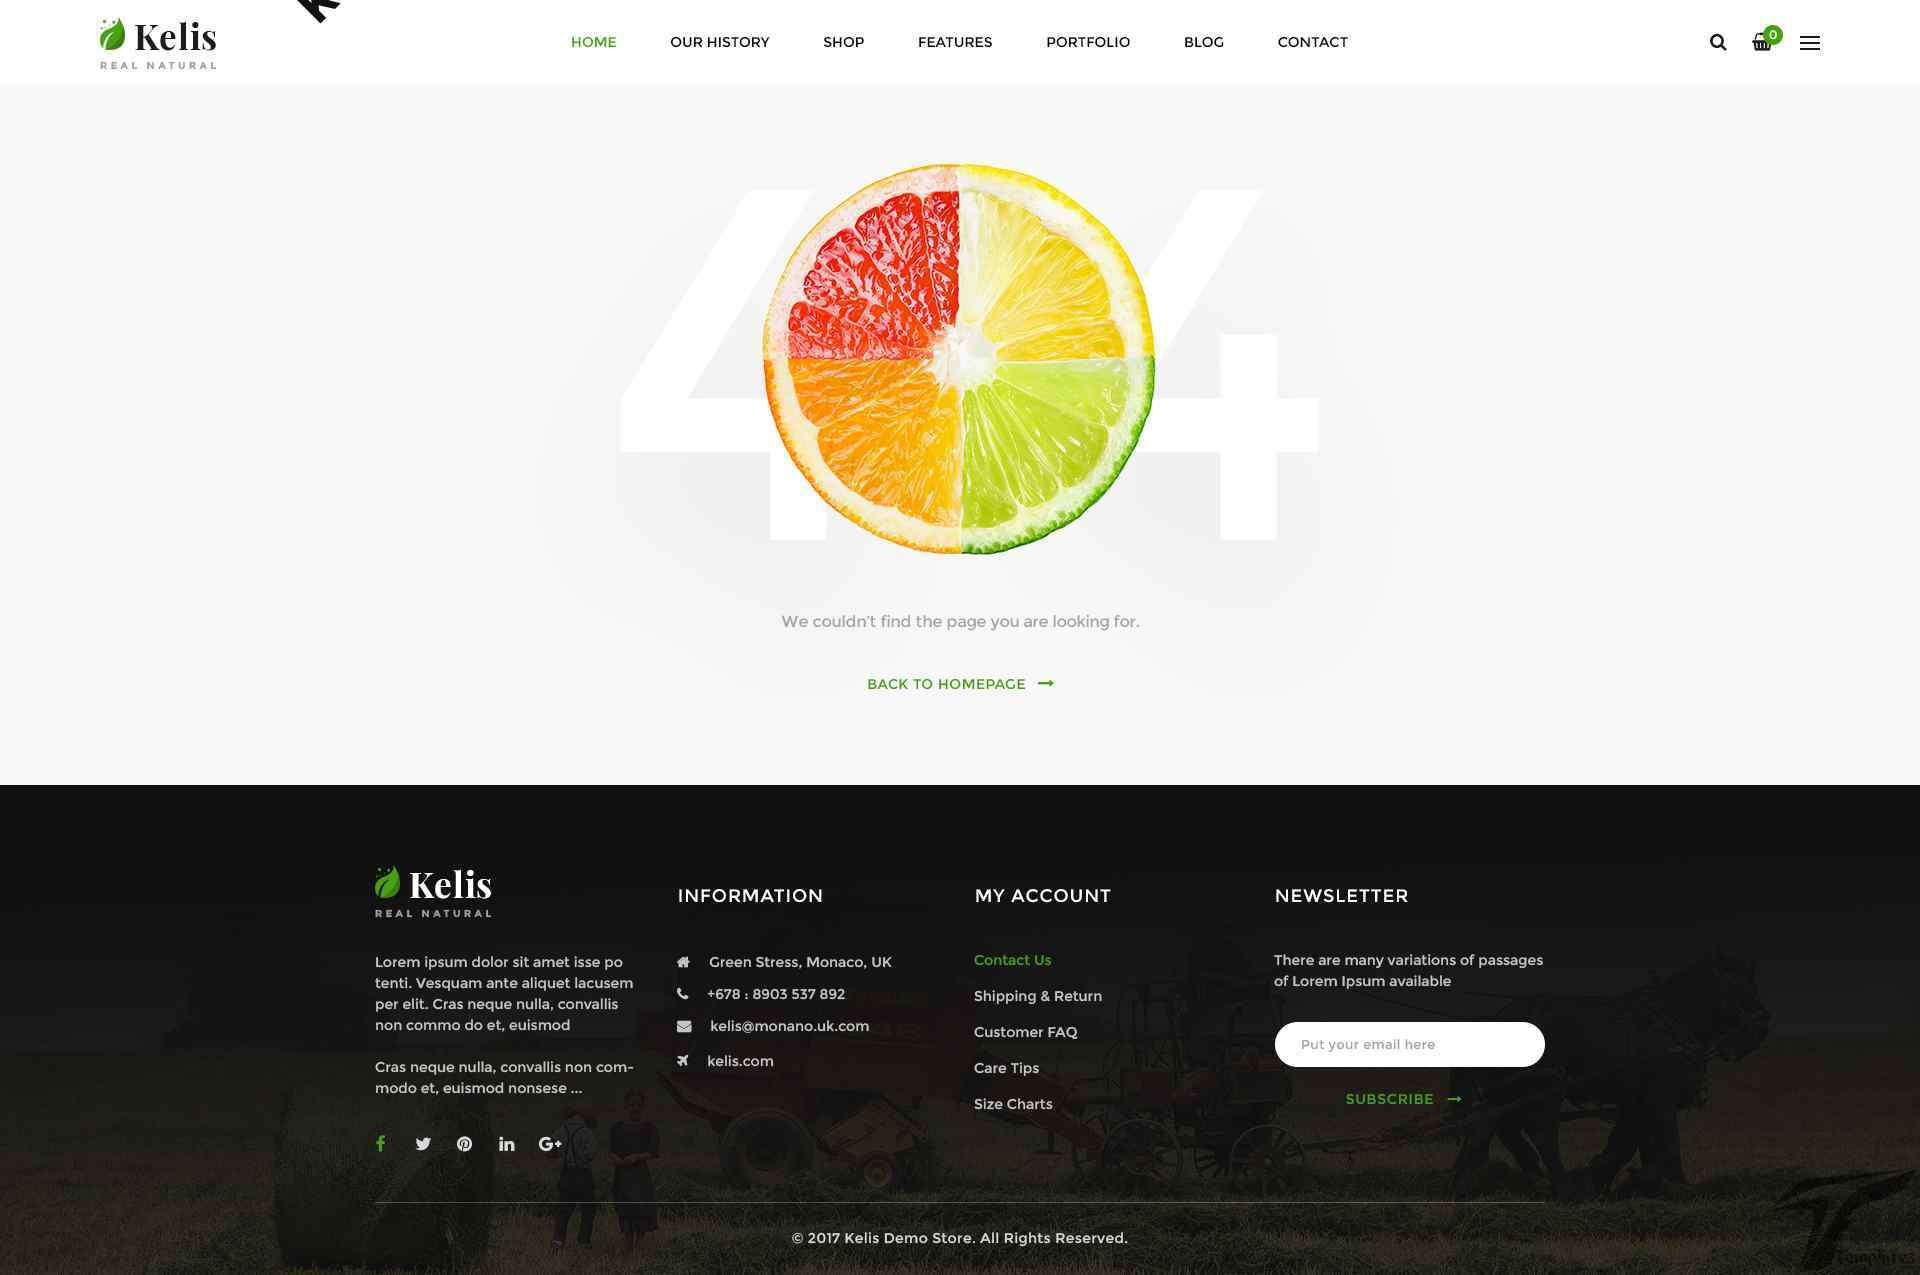 https://images.besthemes.com/images/h1_kelis-organic-food-and-fruit-store-ecommerce-shopify-theme18-_-234864139/Theme-s20s-Preview/17_404.jpg